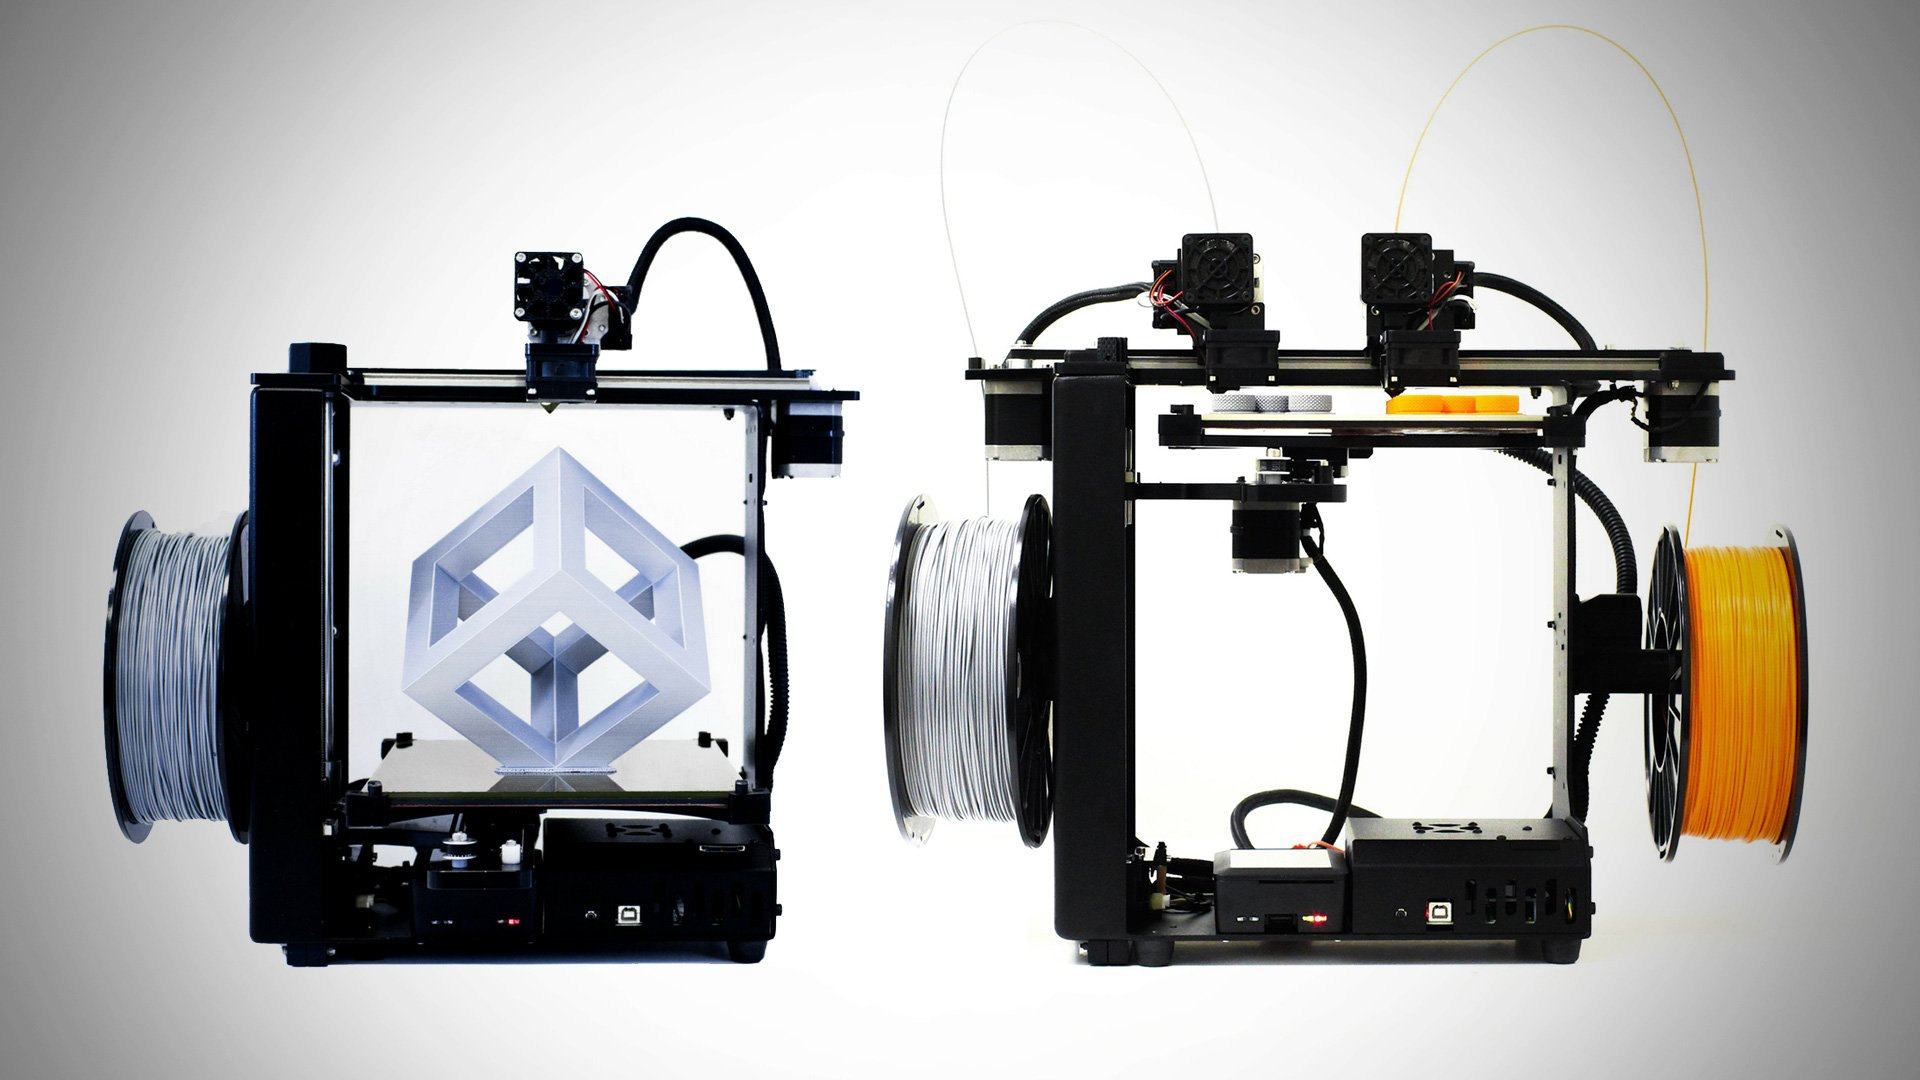 [DEAL] MakerGear M3-SE & M3-ID 3D Printers, $200 Off | All3DP